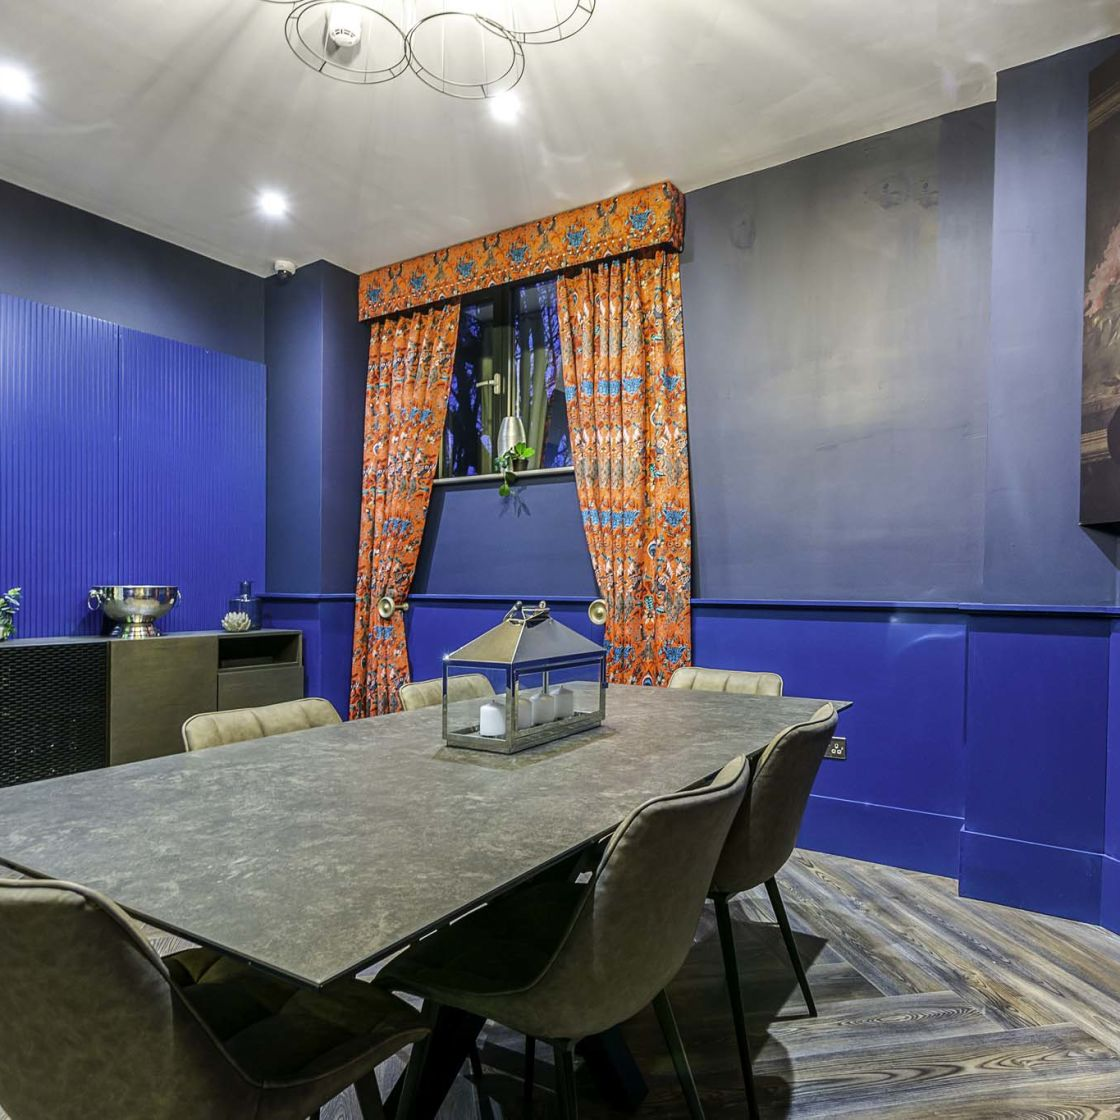 Private dining at IconInc Gravity, student accommodation in Lincoln